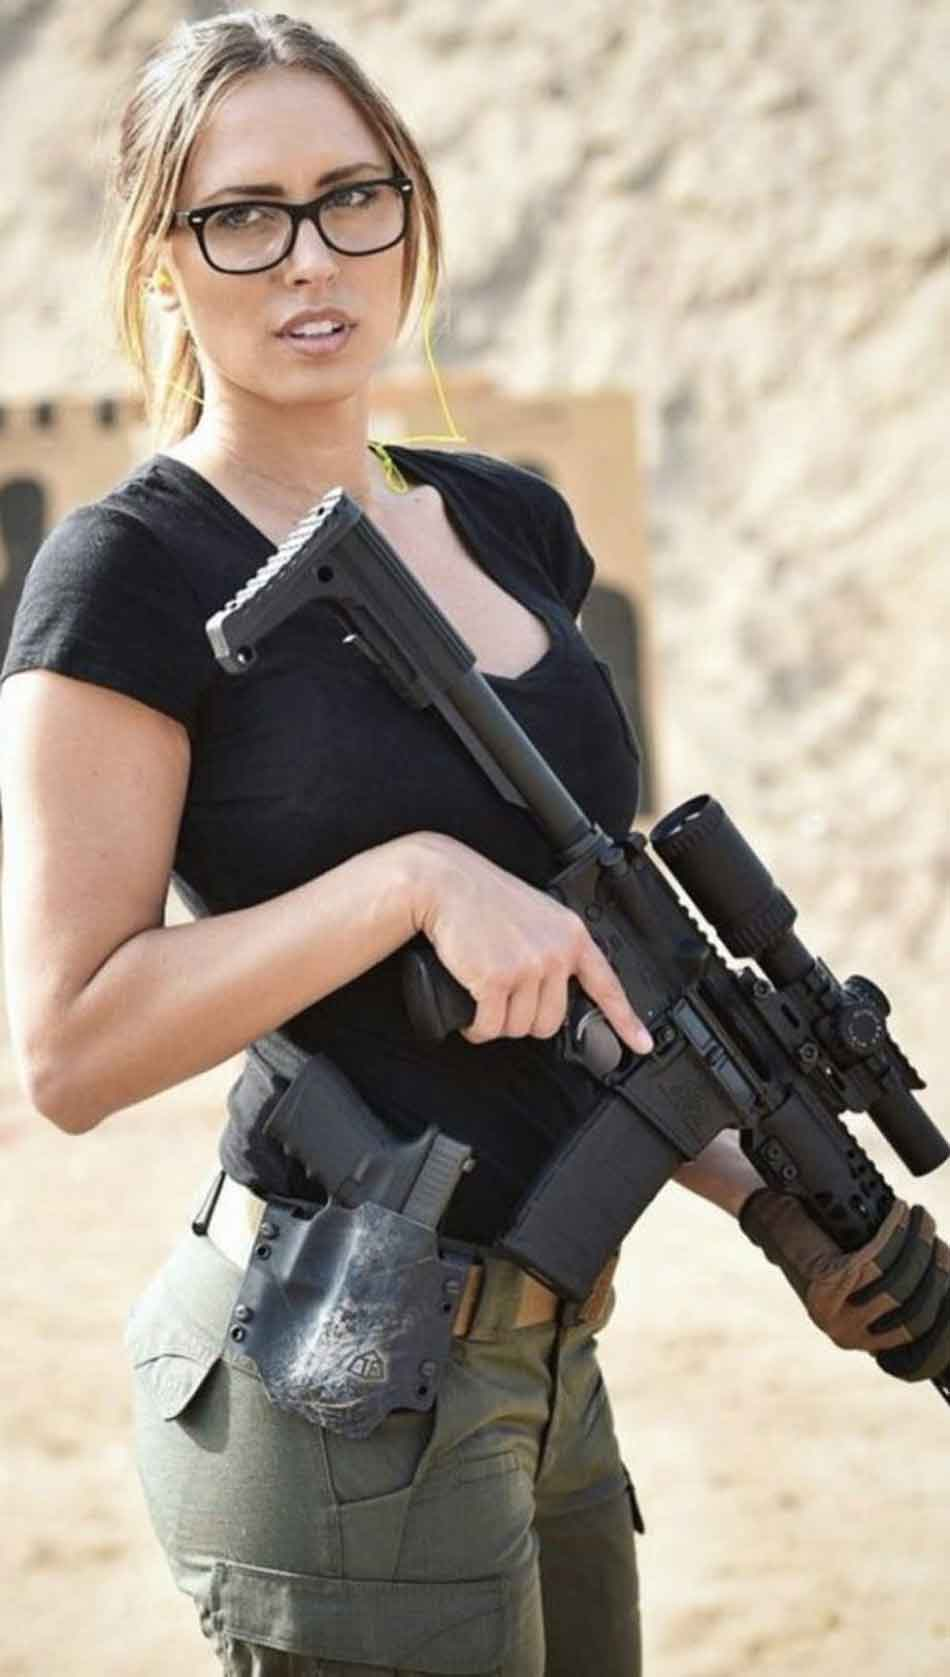 a lady with good trigger discipline